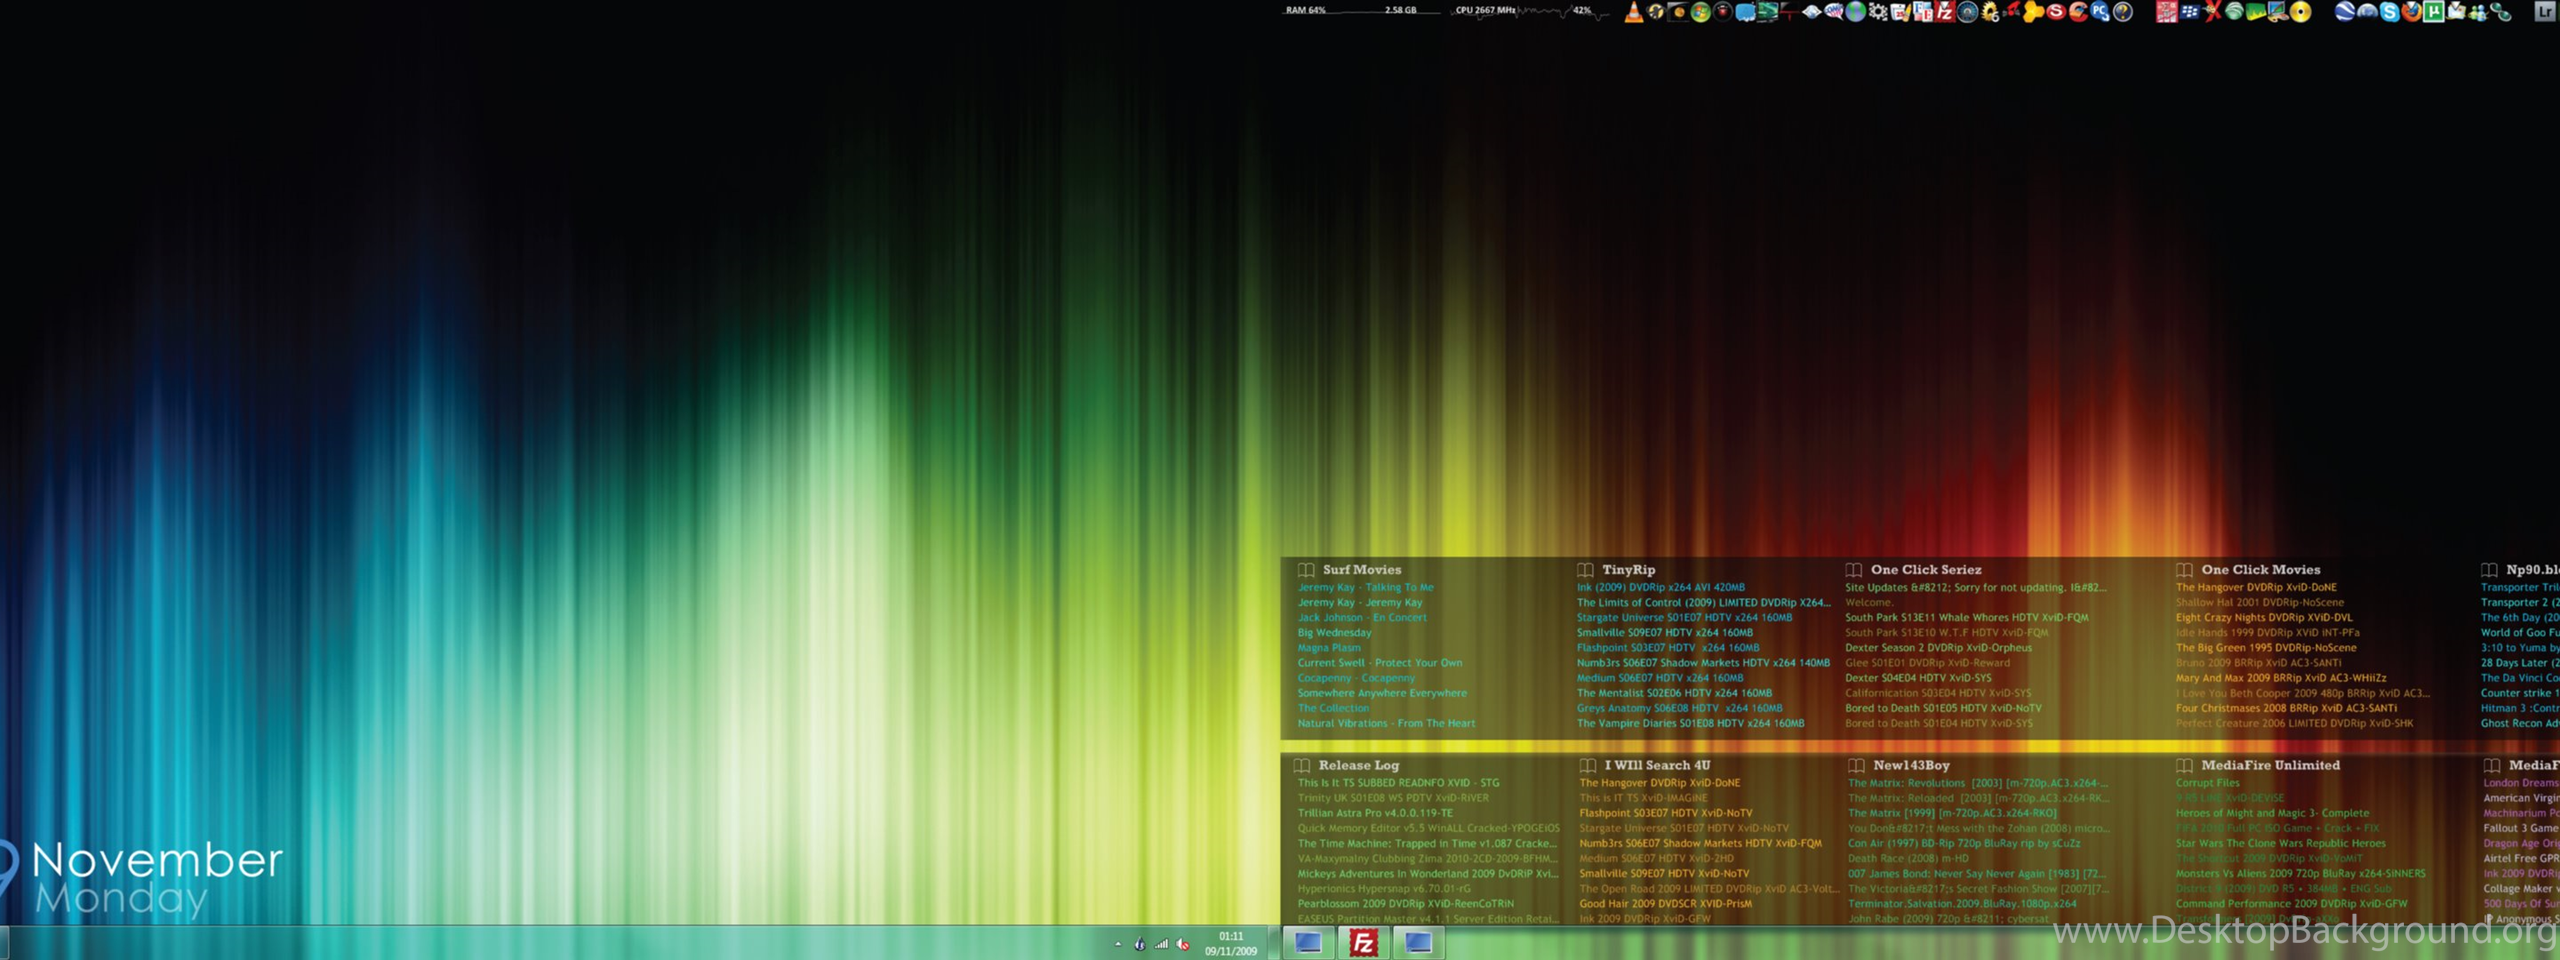 Download Free Png Im 98 Dual Monitor Wallpaper Windows 7